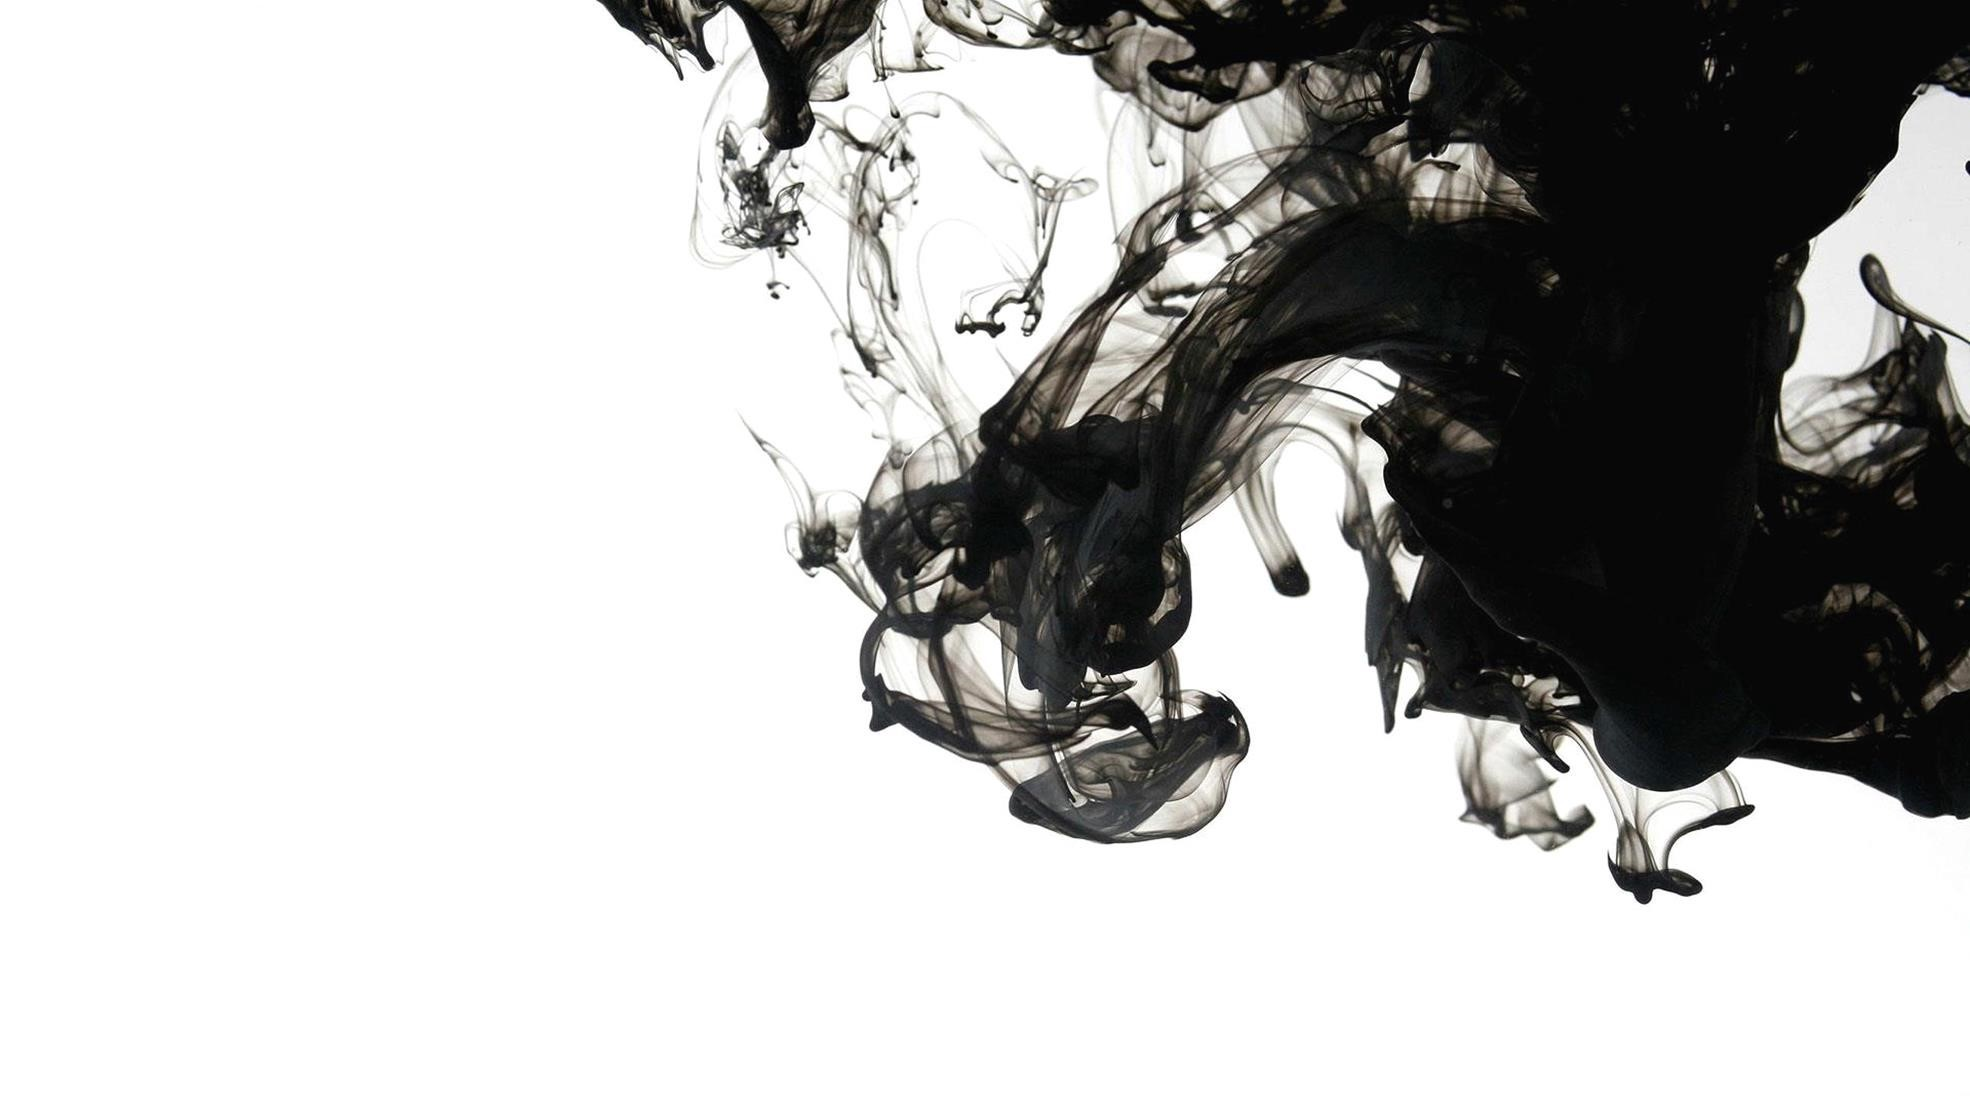 Black And White Abstract Wallpapers Hd Wallpaper Medium